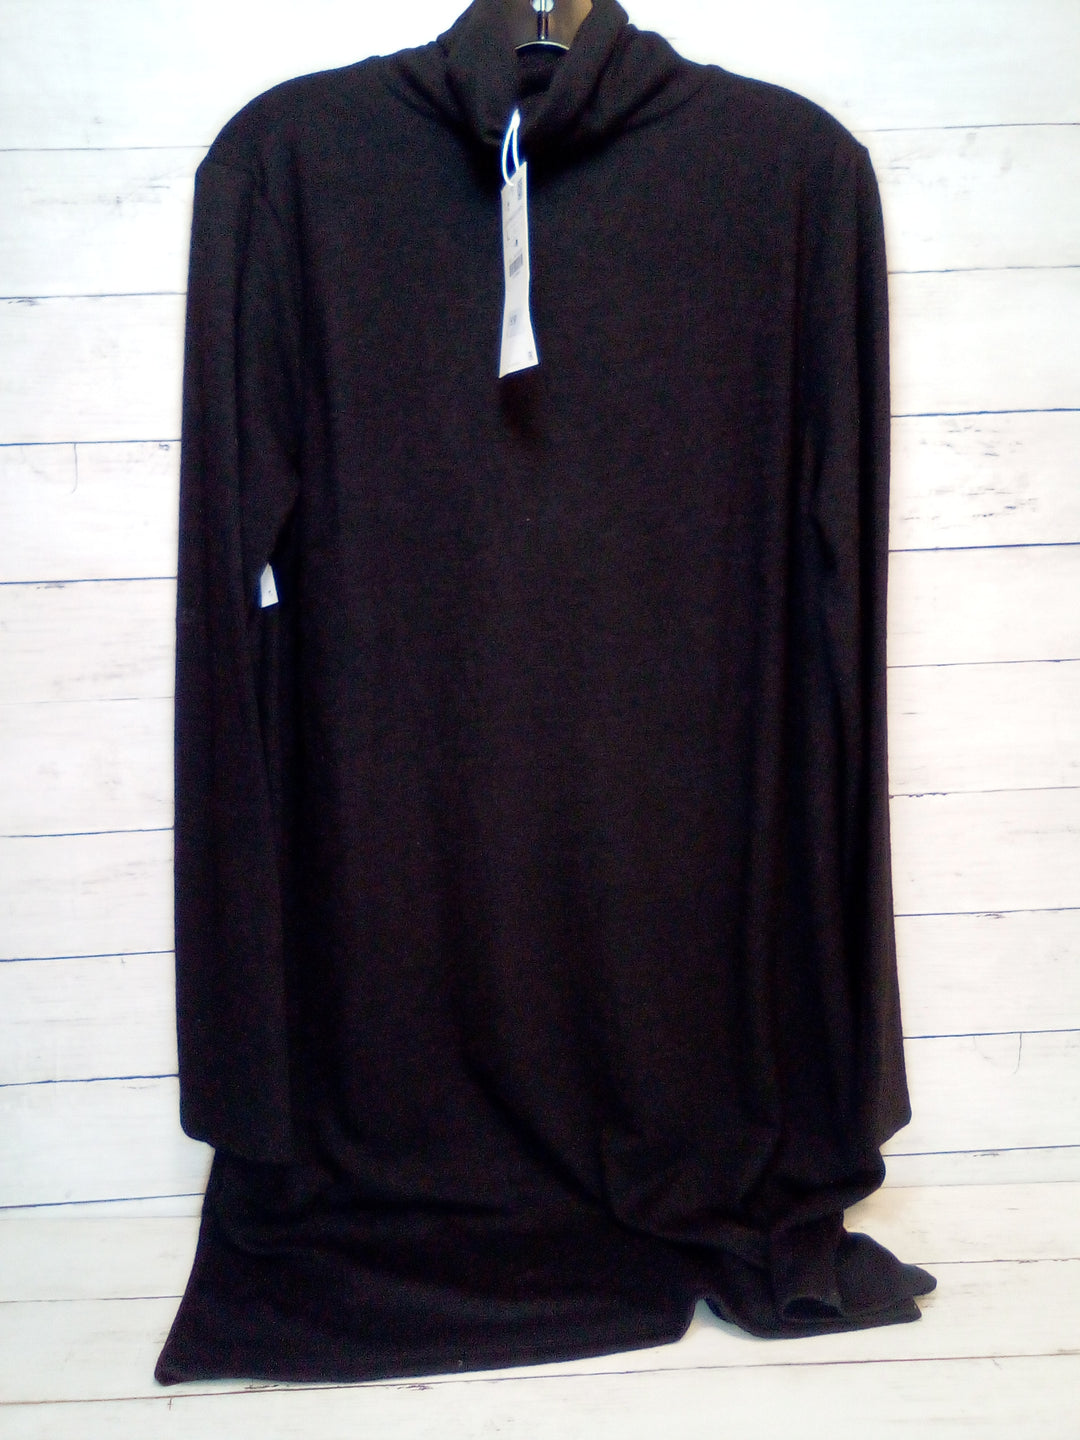 Primary Photo - BRAND: ZARA BASIC <BR>STYLE: DRESS SHORT LONG SLEEVE <BR>COLOR: BLACK <BR>SIZE: L <BR>OTHER INFO: NEW! <BR>SKU: 216-21638-64719